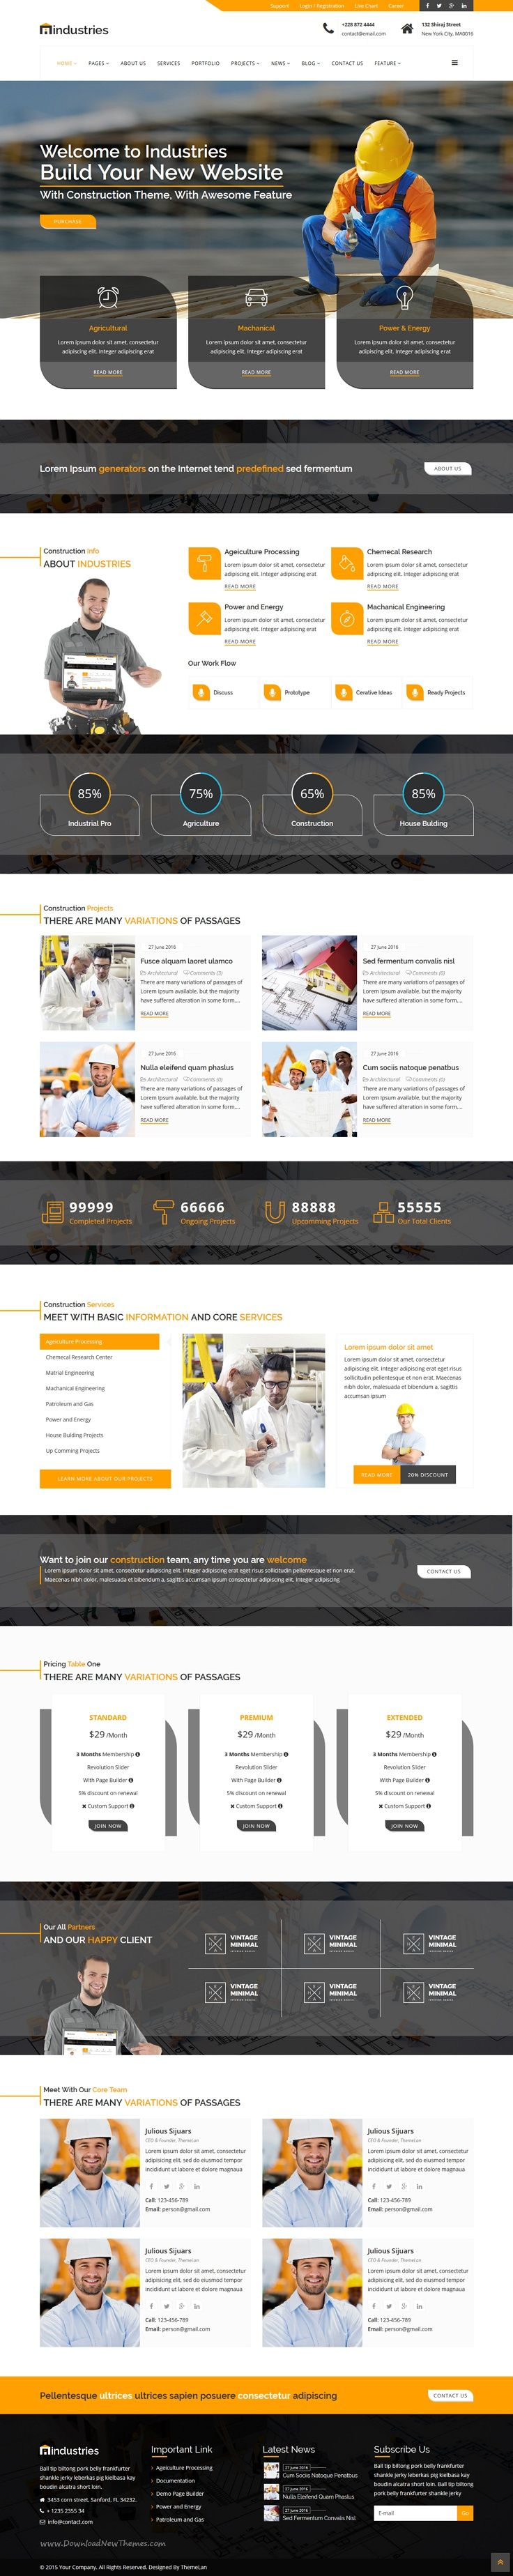 Industries is an clean coding premium #Joomla #template for industrial and #construction building company website download now➯ https://themeforest.net/item/industries-industrial-construction-joomla-business-template/17011592?ref=Datasata